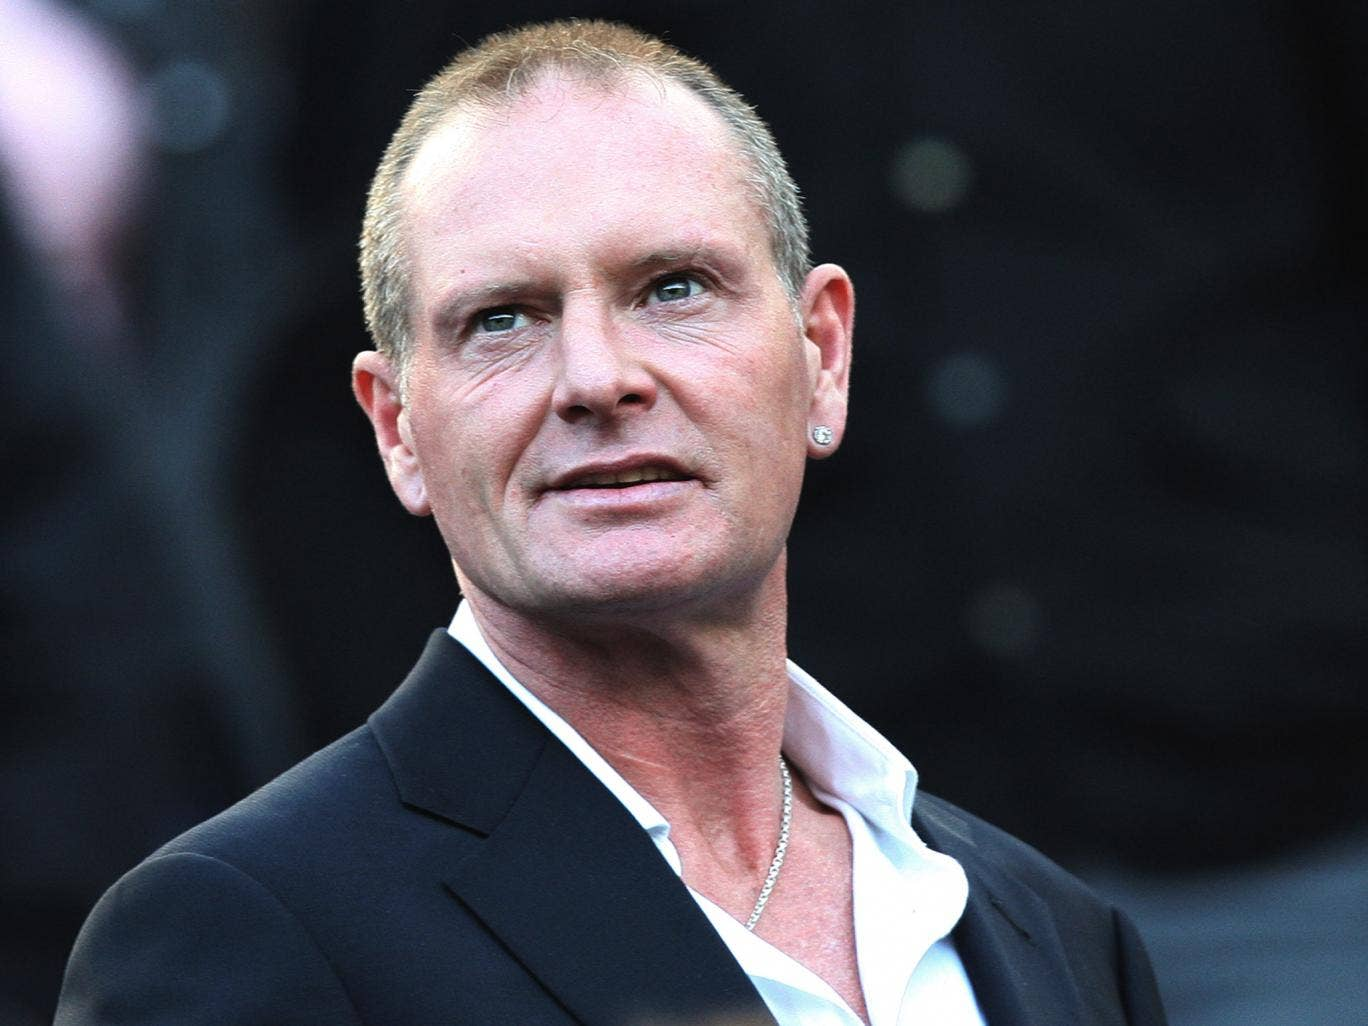 Roy Hodgson said that Gascoigne needed to take 'drastic measures to try and get his life back into some sort of order'